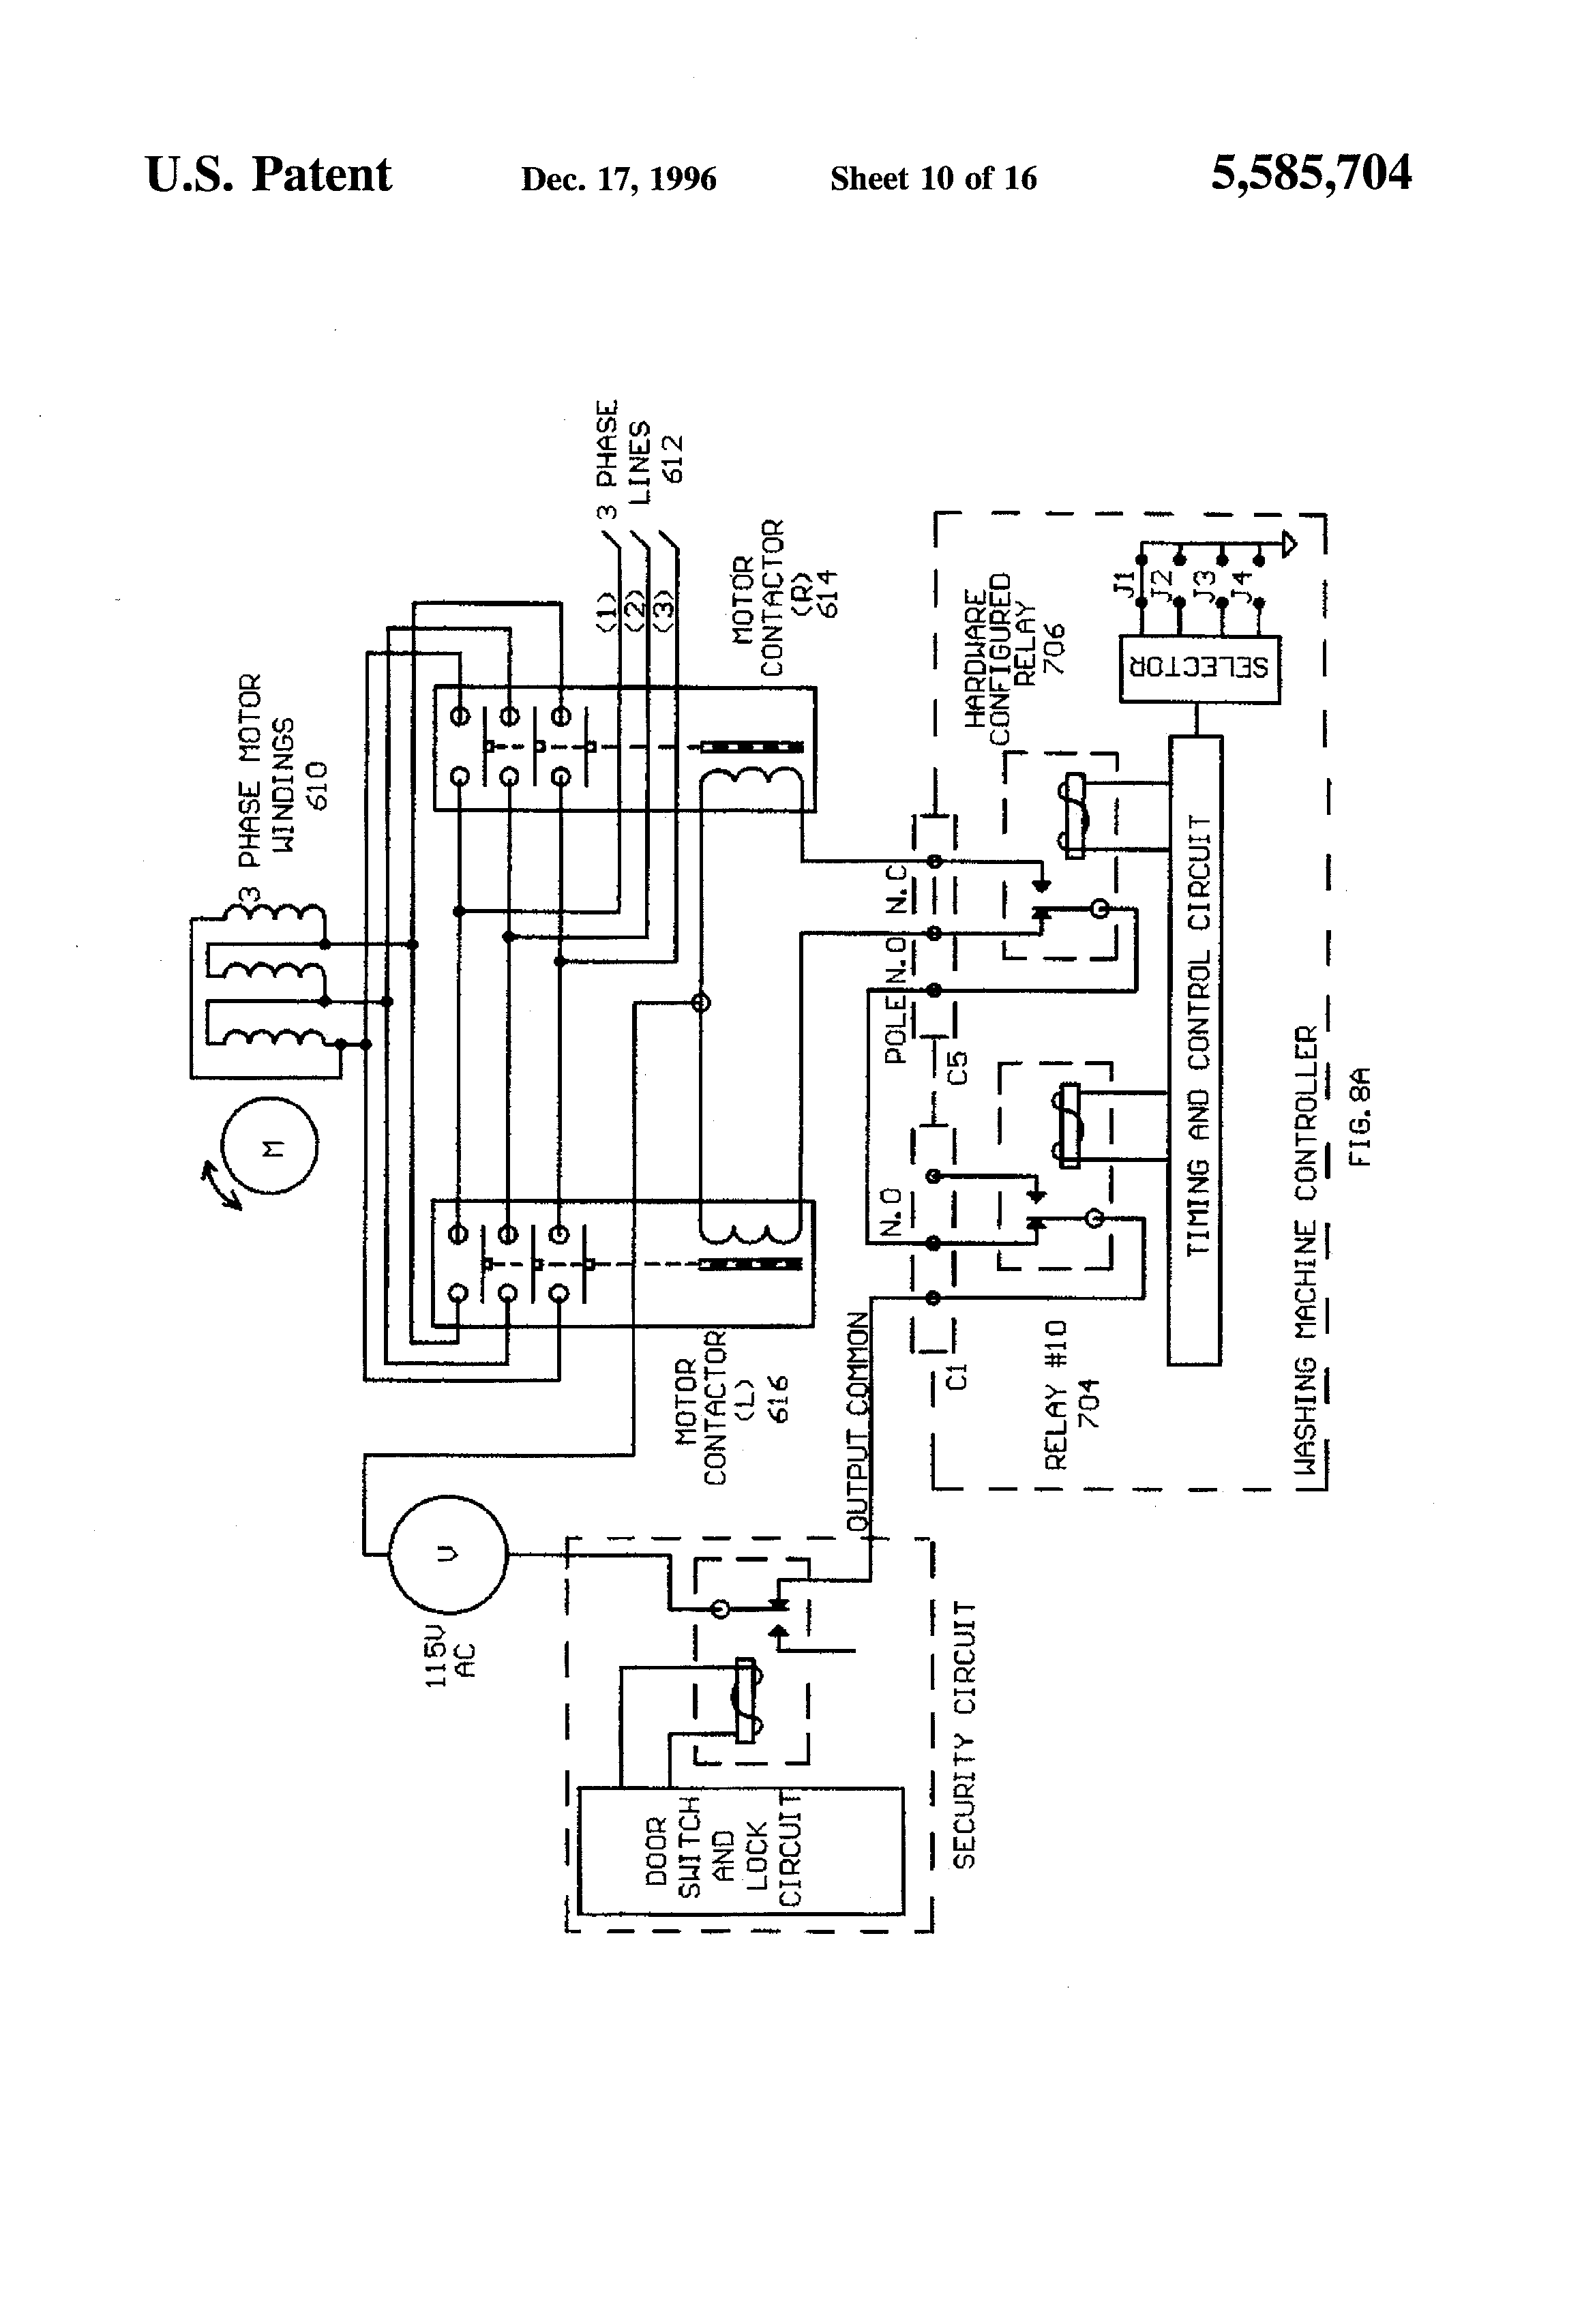 3 Wire Washing Machine Motor Wiring Diagram 43 Dryer Us5585704 10 Patent Computer Means For Commercial Machines